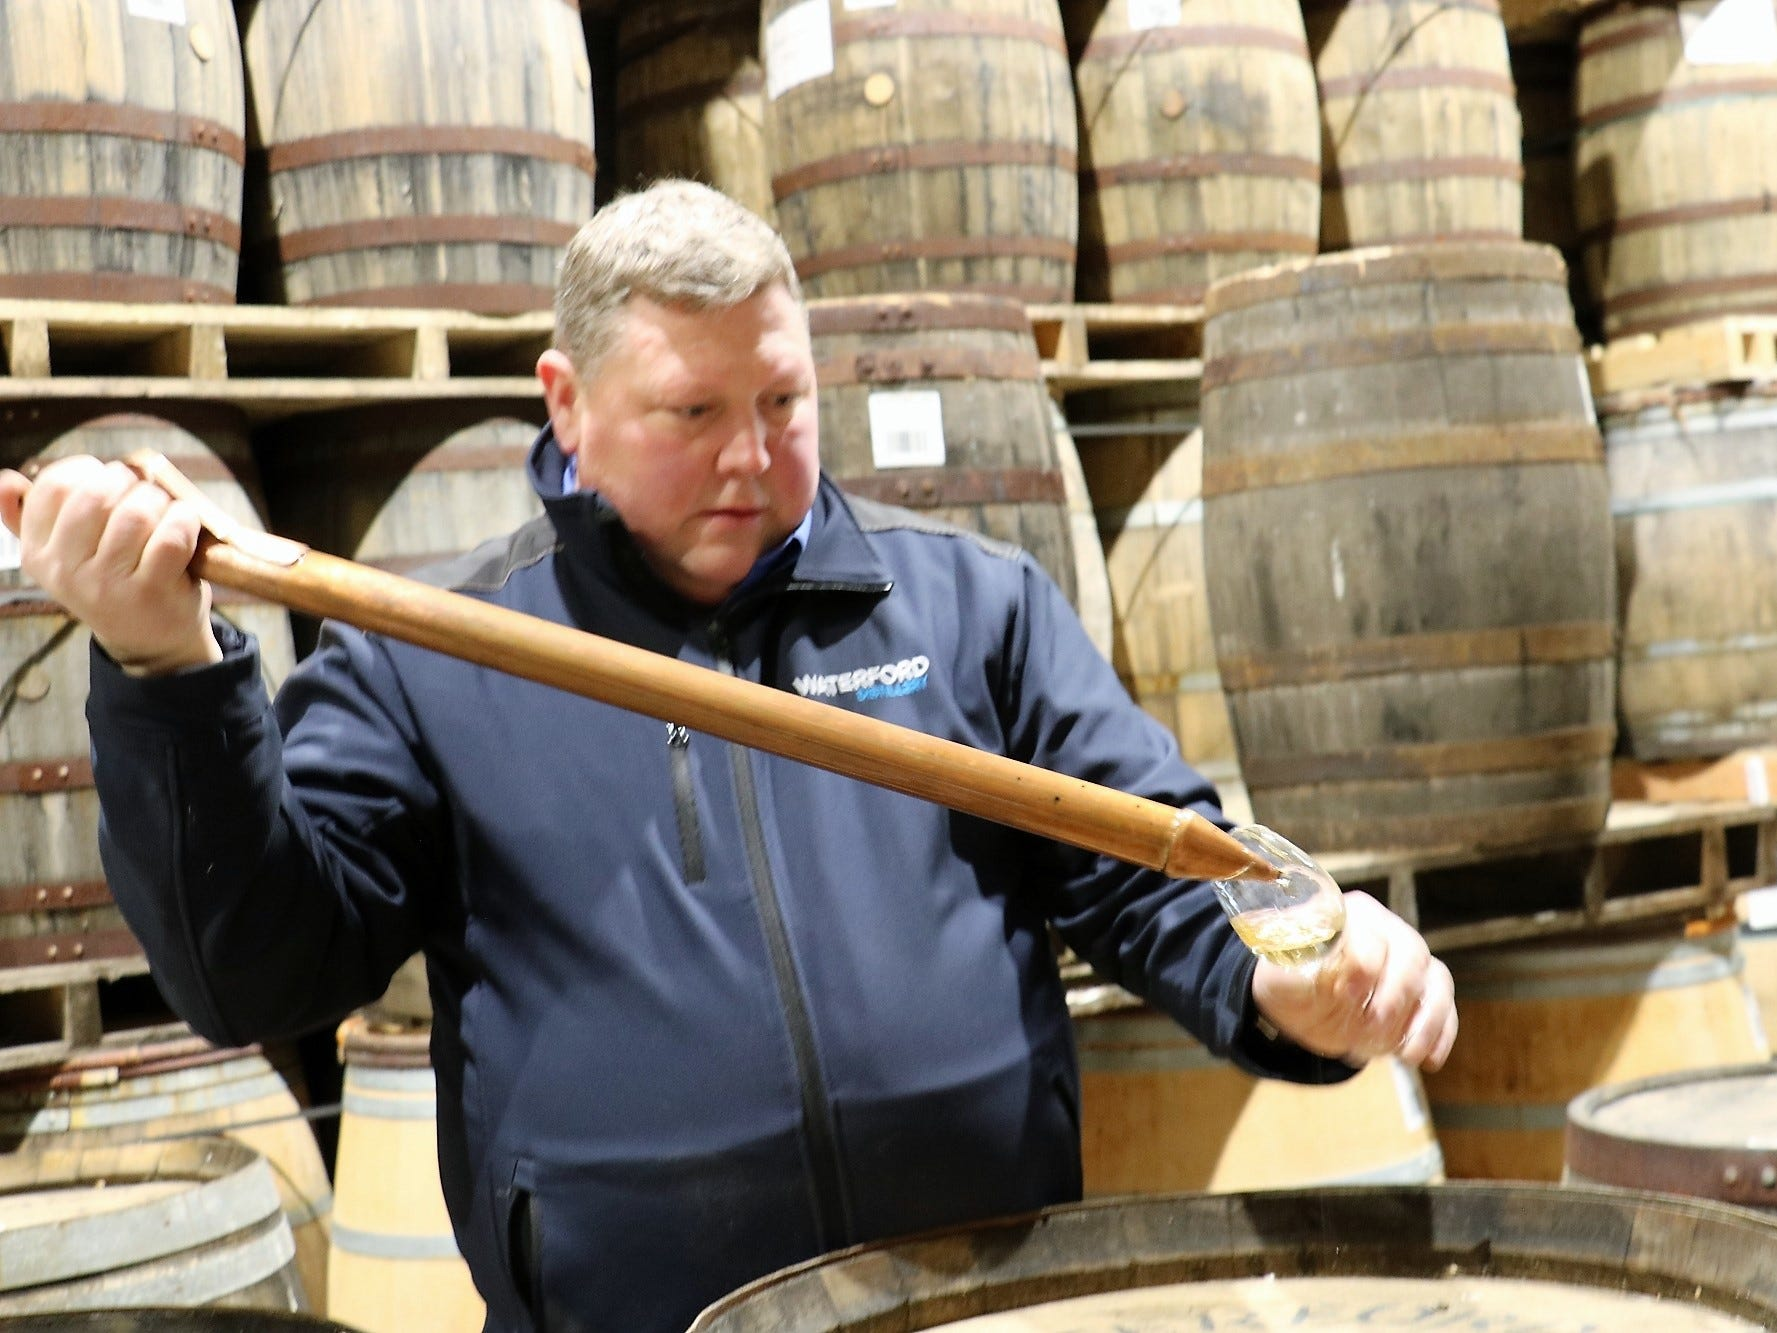 Gahan pulls a cask sample for a taste. Waterford uniquely barrels its whiskey at its full distillation strength, approximately 71 percent ABV, as opposed to diluting it prior to maturation.